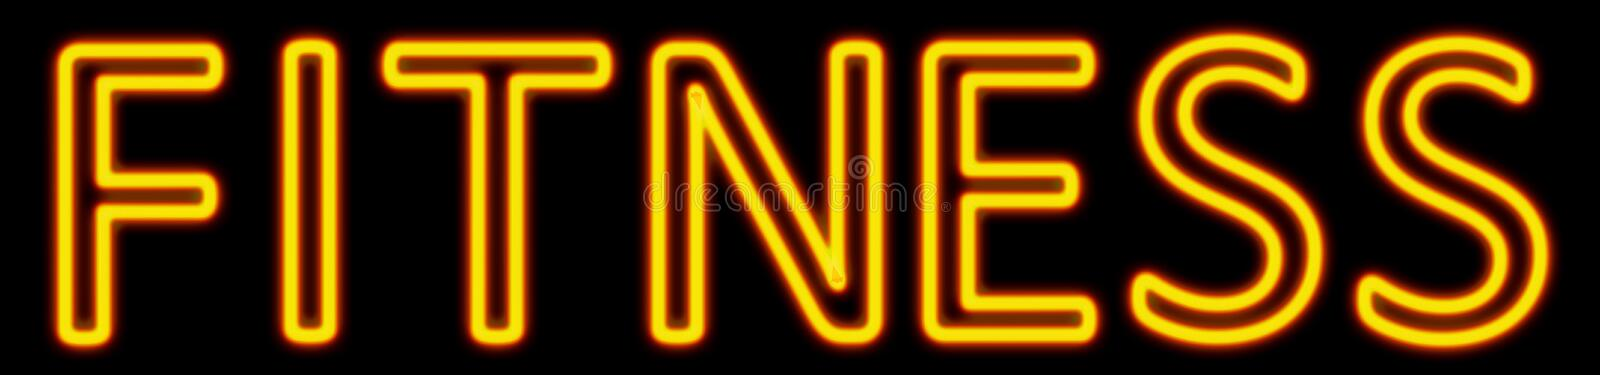 Fitness neon sign. Abstract 3d rendered words fitness yellow neon sign on black background royalty free illustration